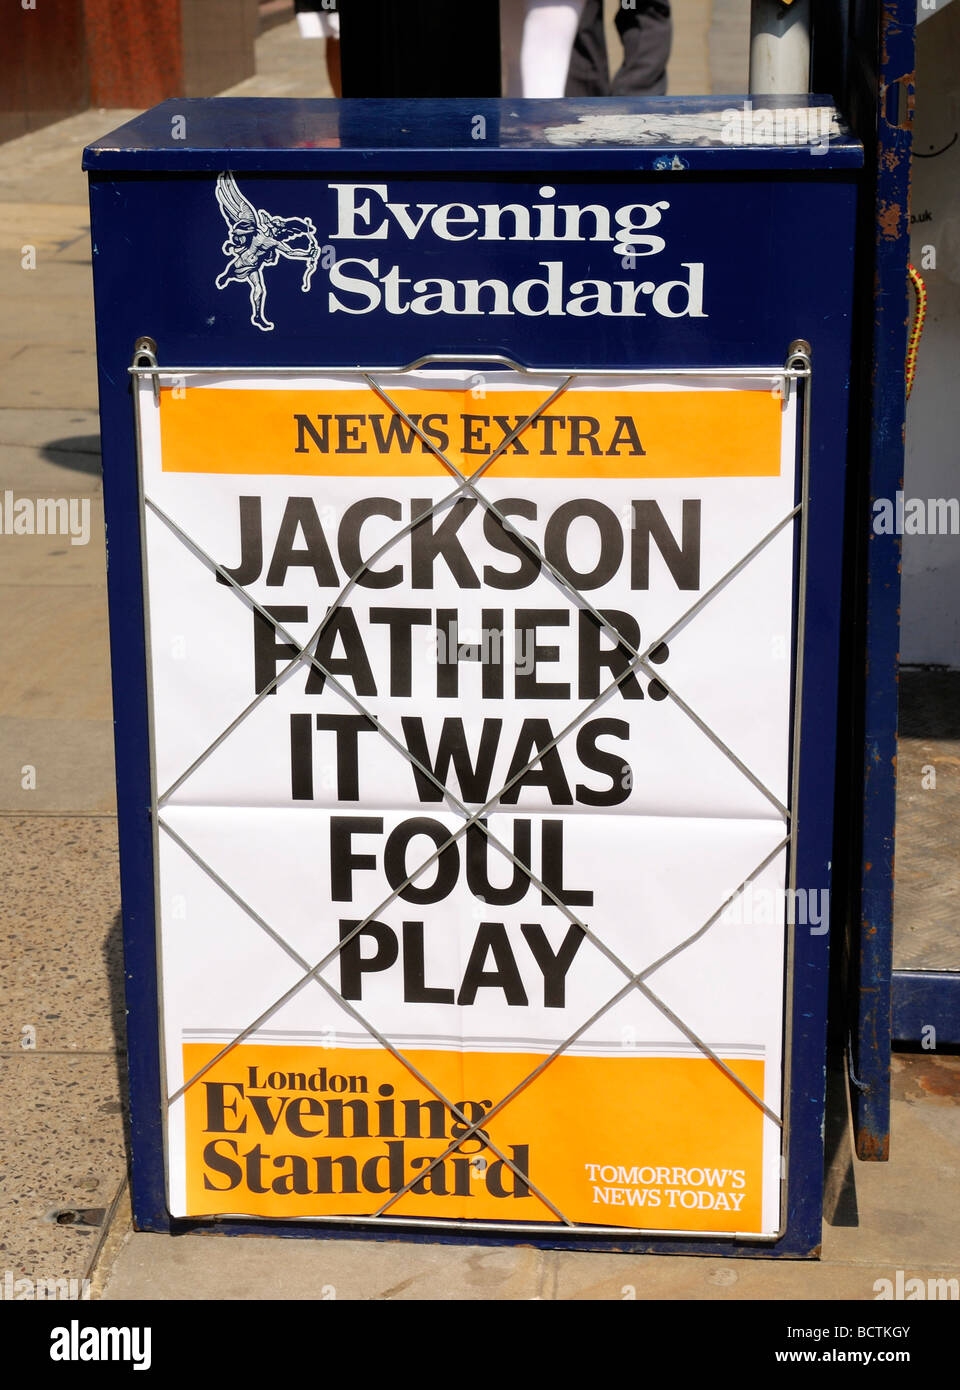 Evening Standard Newspaper Headline - Michael Jackson father it was foul play - Stock Image